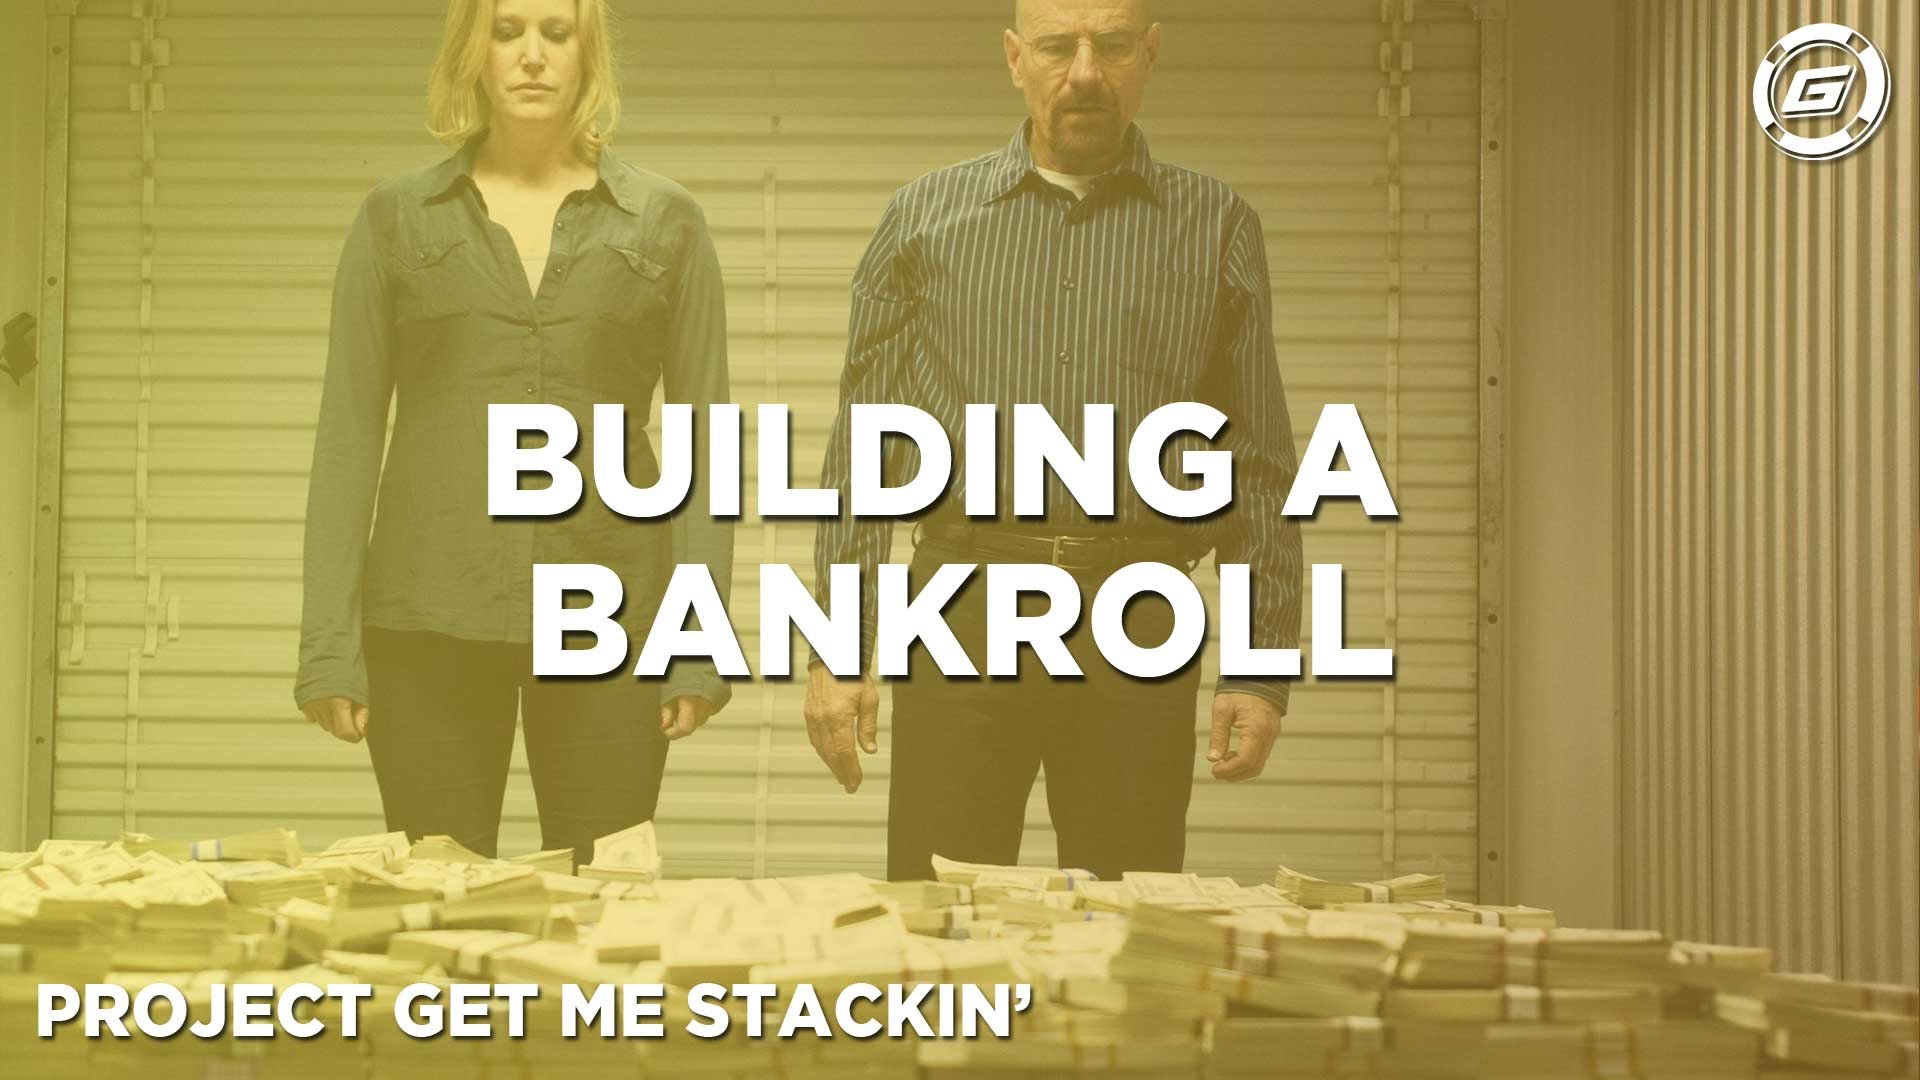 How To Build A Bankroll - LESSON #2